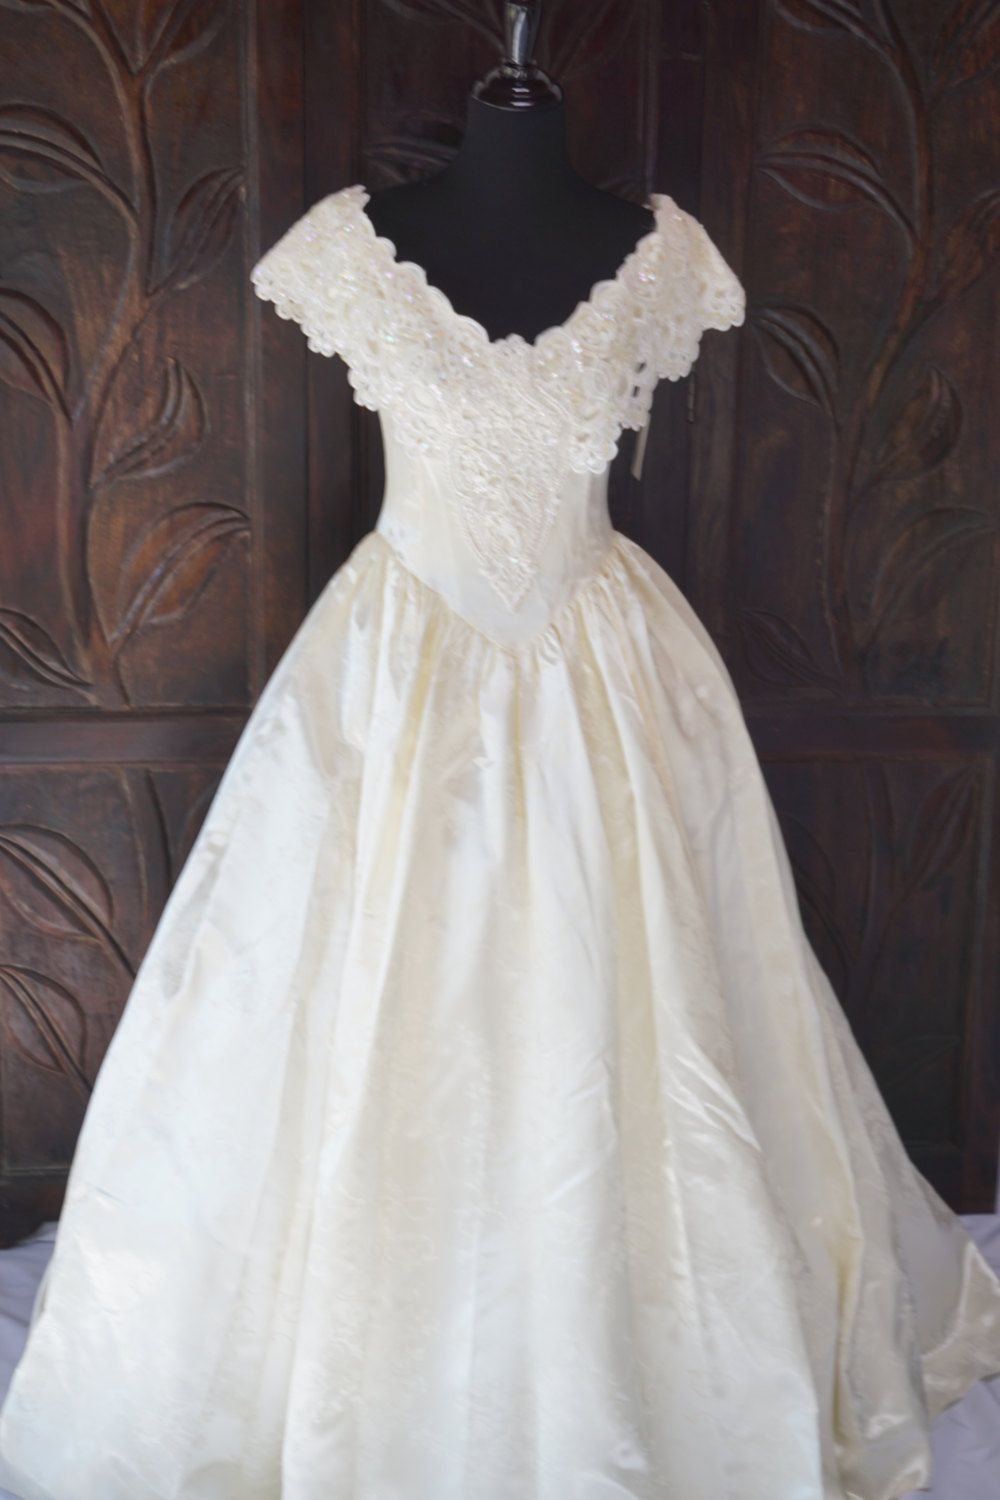 New Vintage Satin Southern Belle Wedding Gown Size 8 Never Worn ...